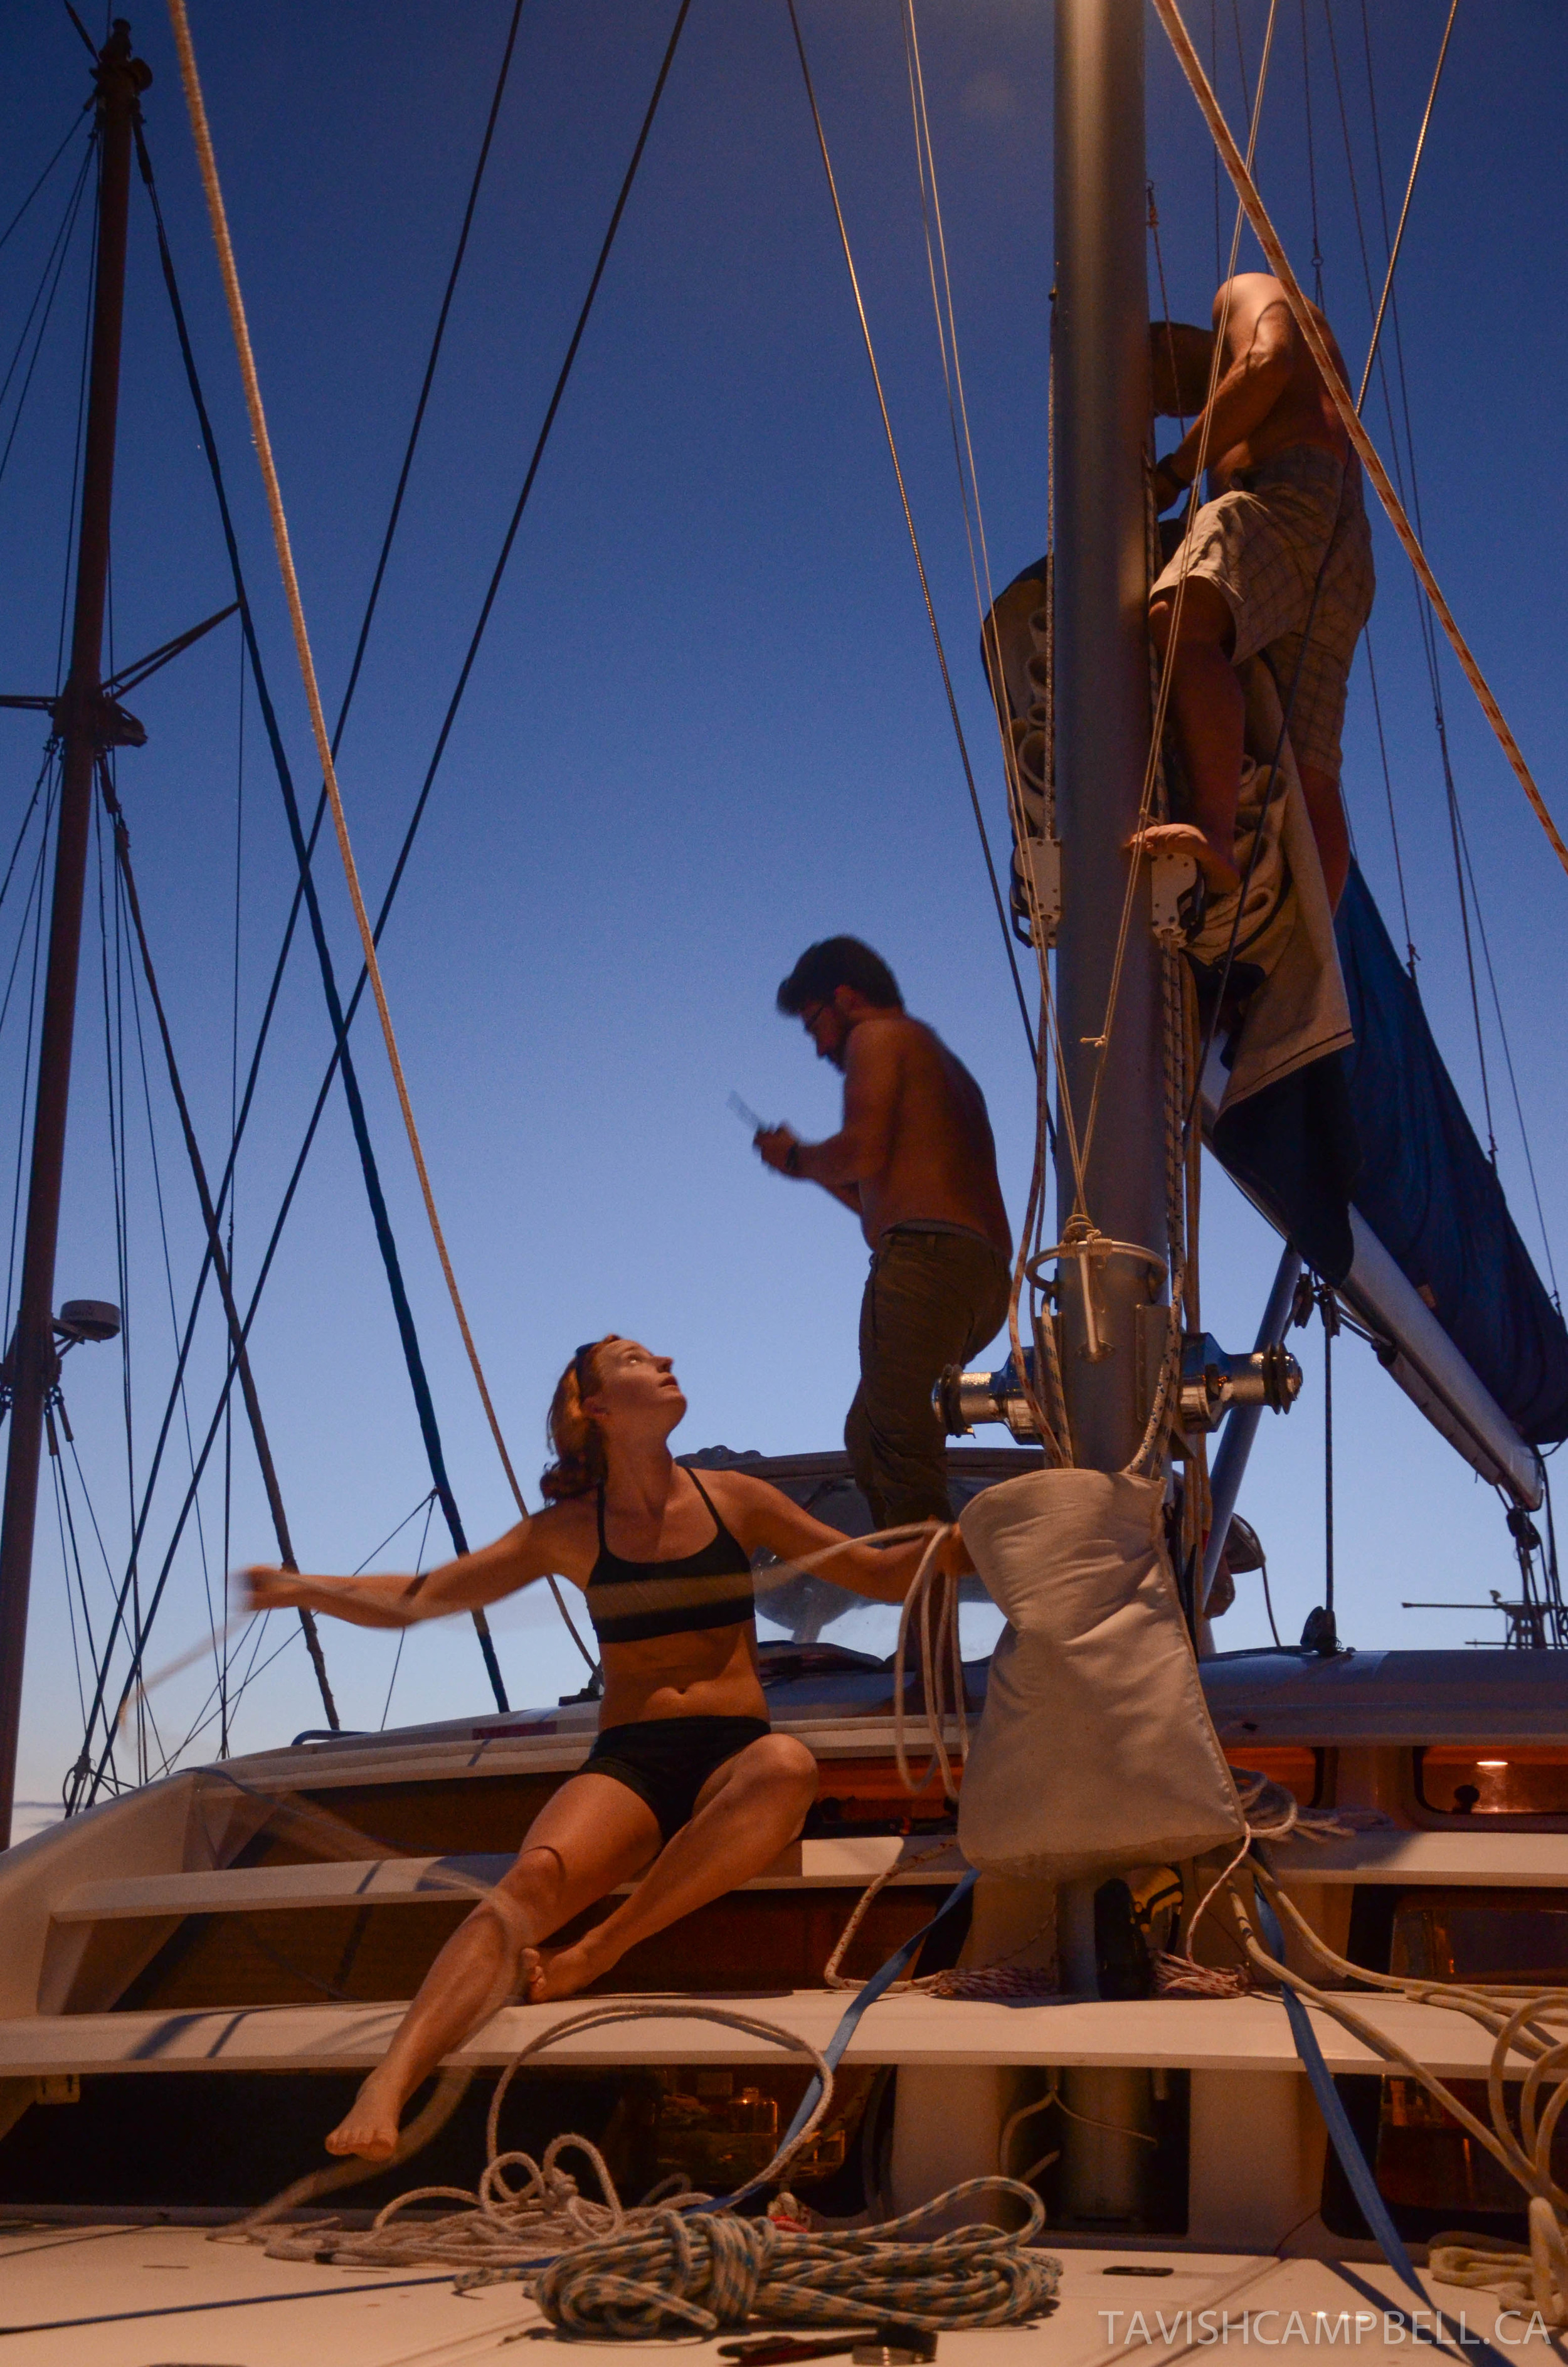 Final rig prep is completed by crew in Honolulu, Hawaii the night before departure on an 18 day passage north to B.C. in May 2012.